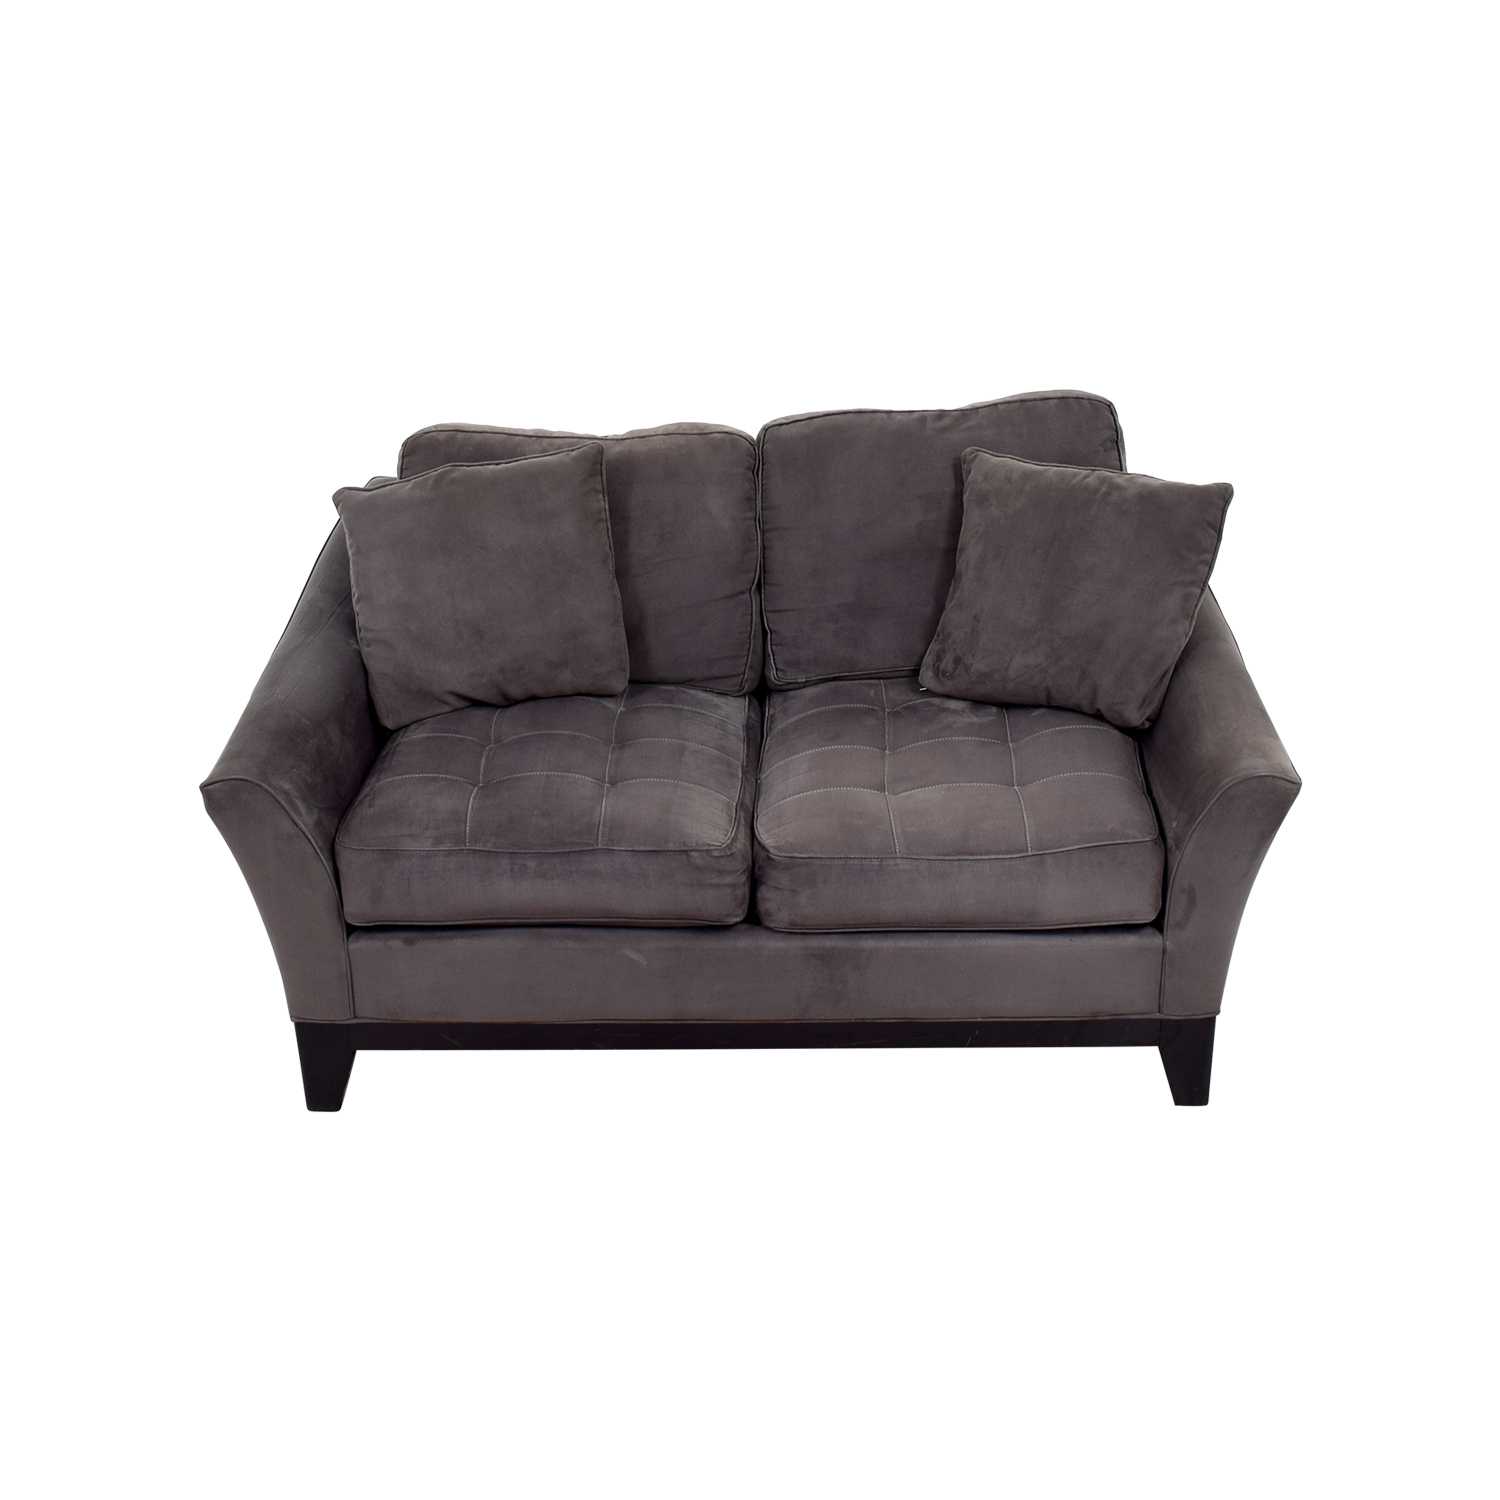 sofa cushion foam types leather brands reviews used what type of upholstery is in couch